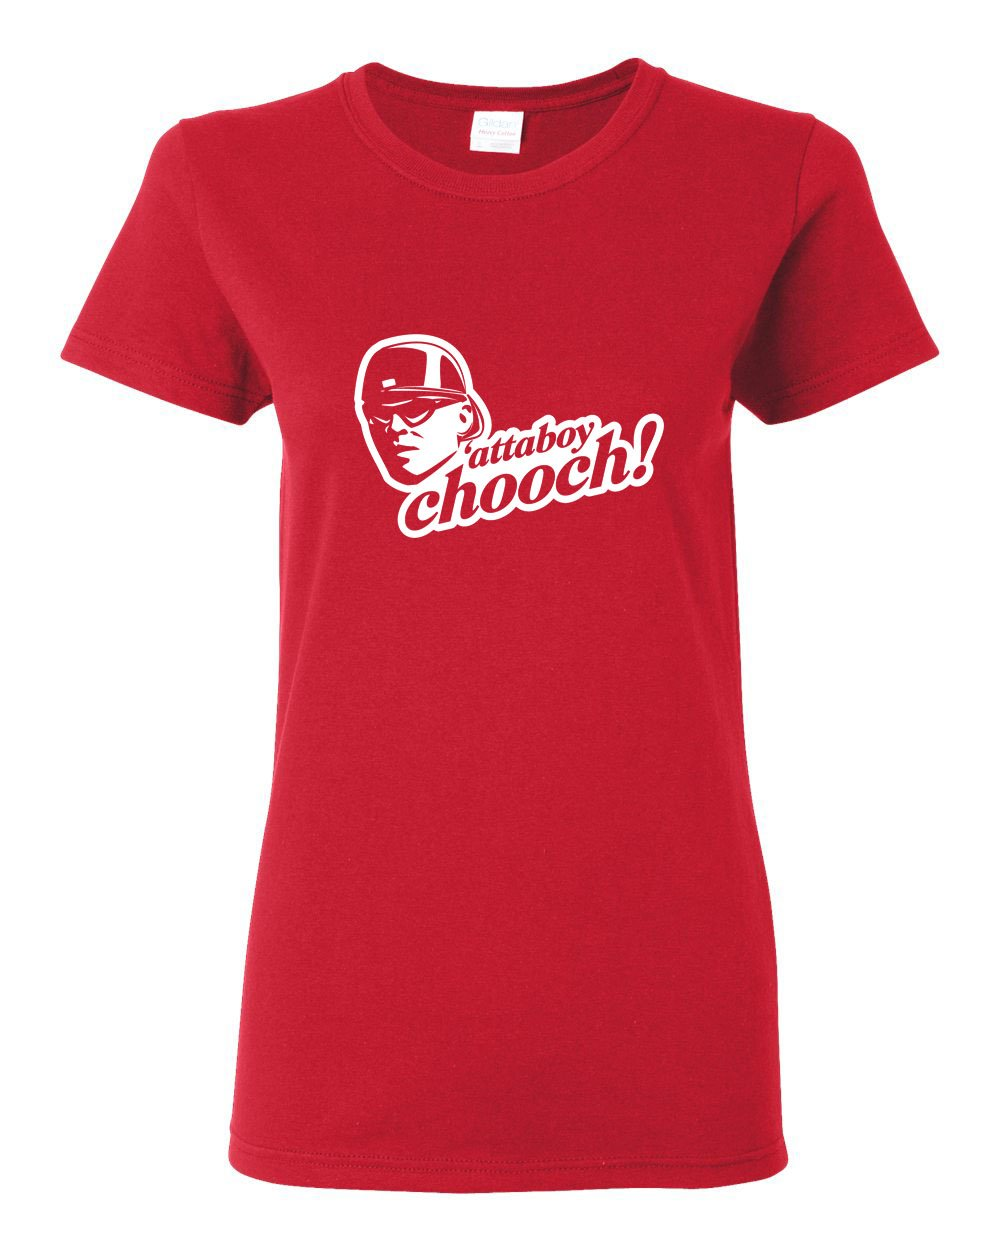 Attaboy Chooch LADIES Missy-Fit T-Shirt